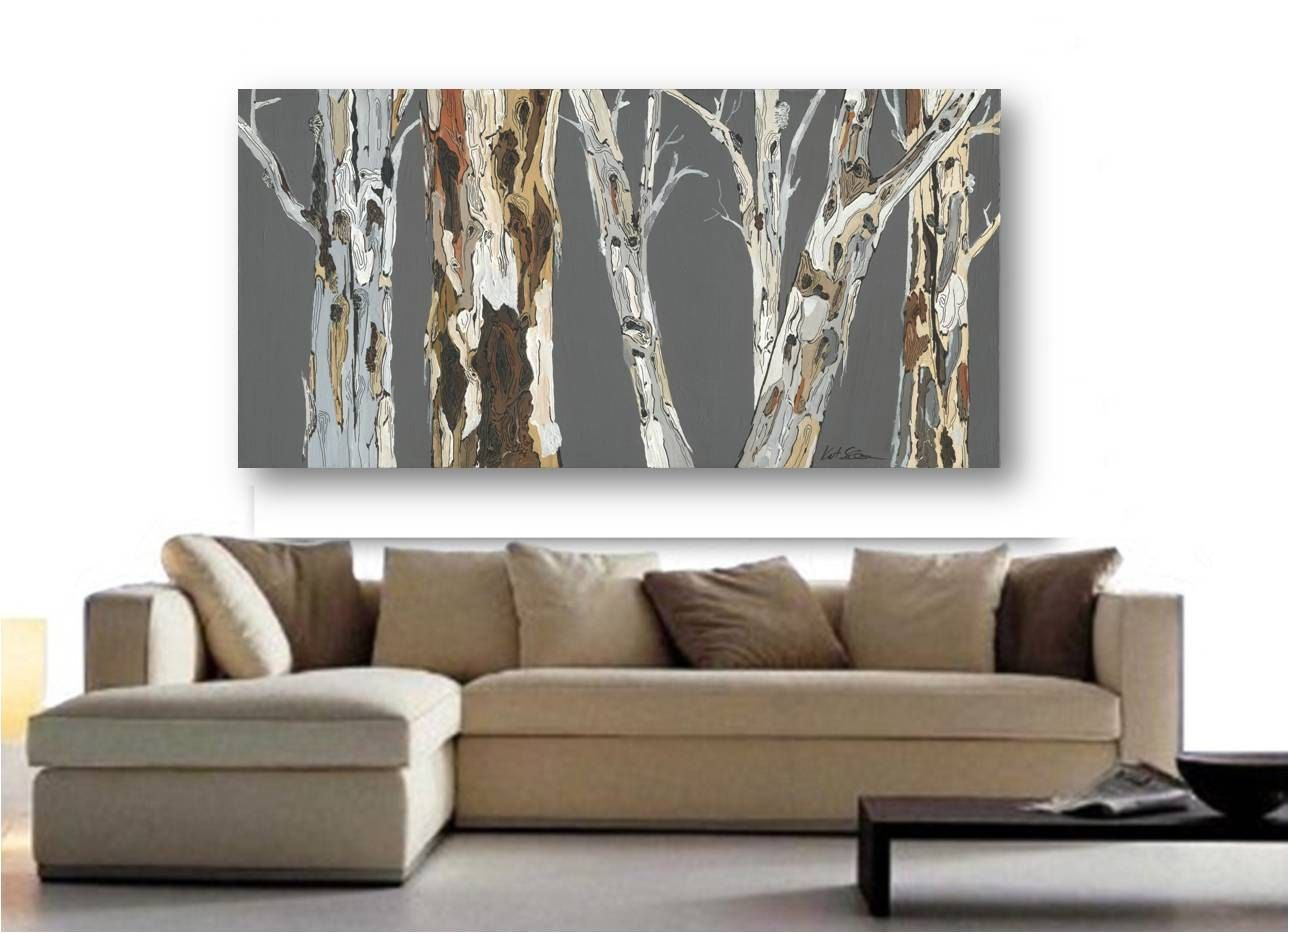 Masculine Wall Art Extra LARGE Diptych Huge Living Dining Room Print Set Oversized Tree Trunks Decor Teal Gray Bedroom Rustic Modern